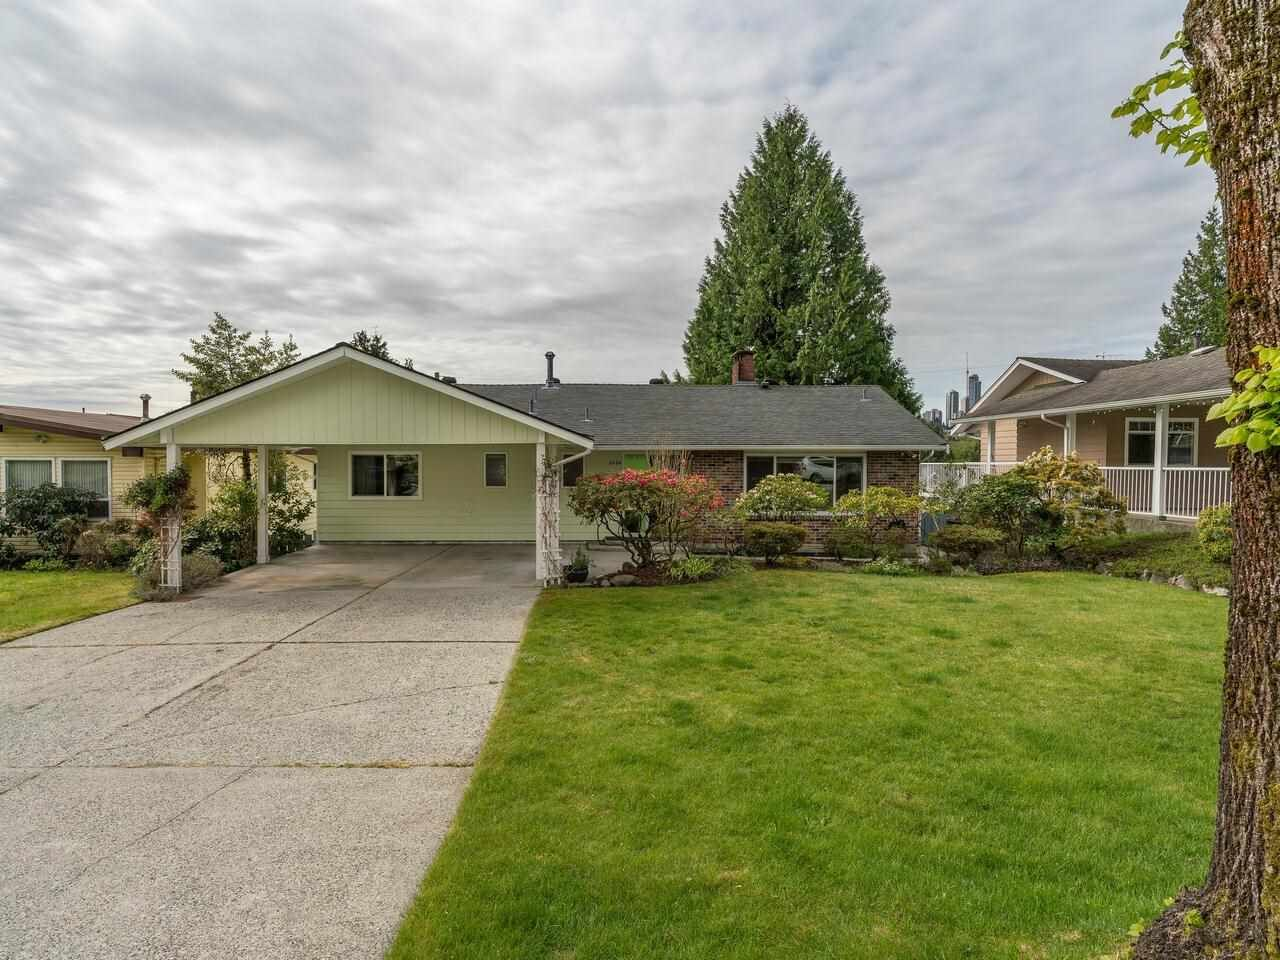 Main Photo: 5404 EGLINTON Street in Burnaby: Deer Lake Place House for sale (Burnaby South)  : MLS®# R2574244